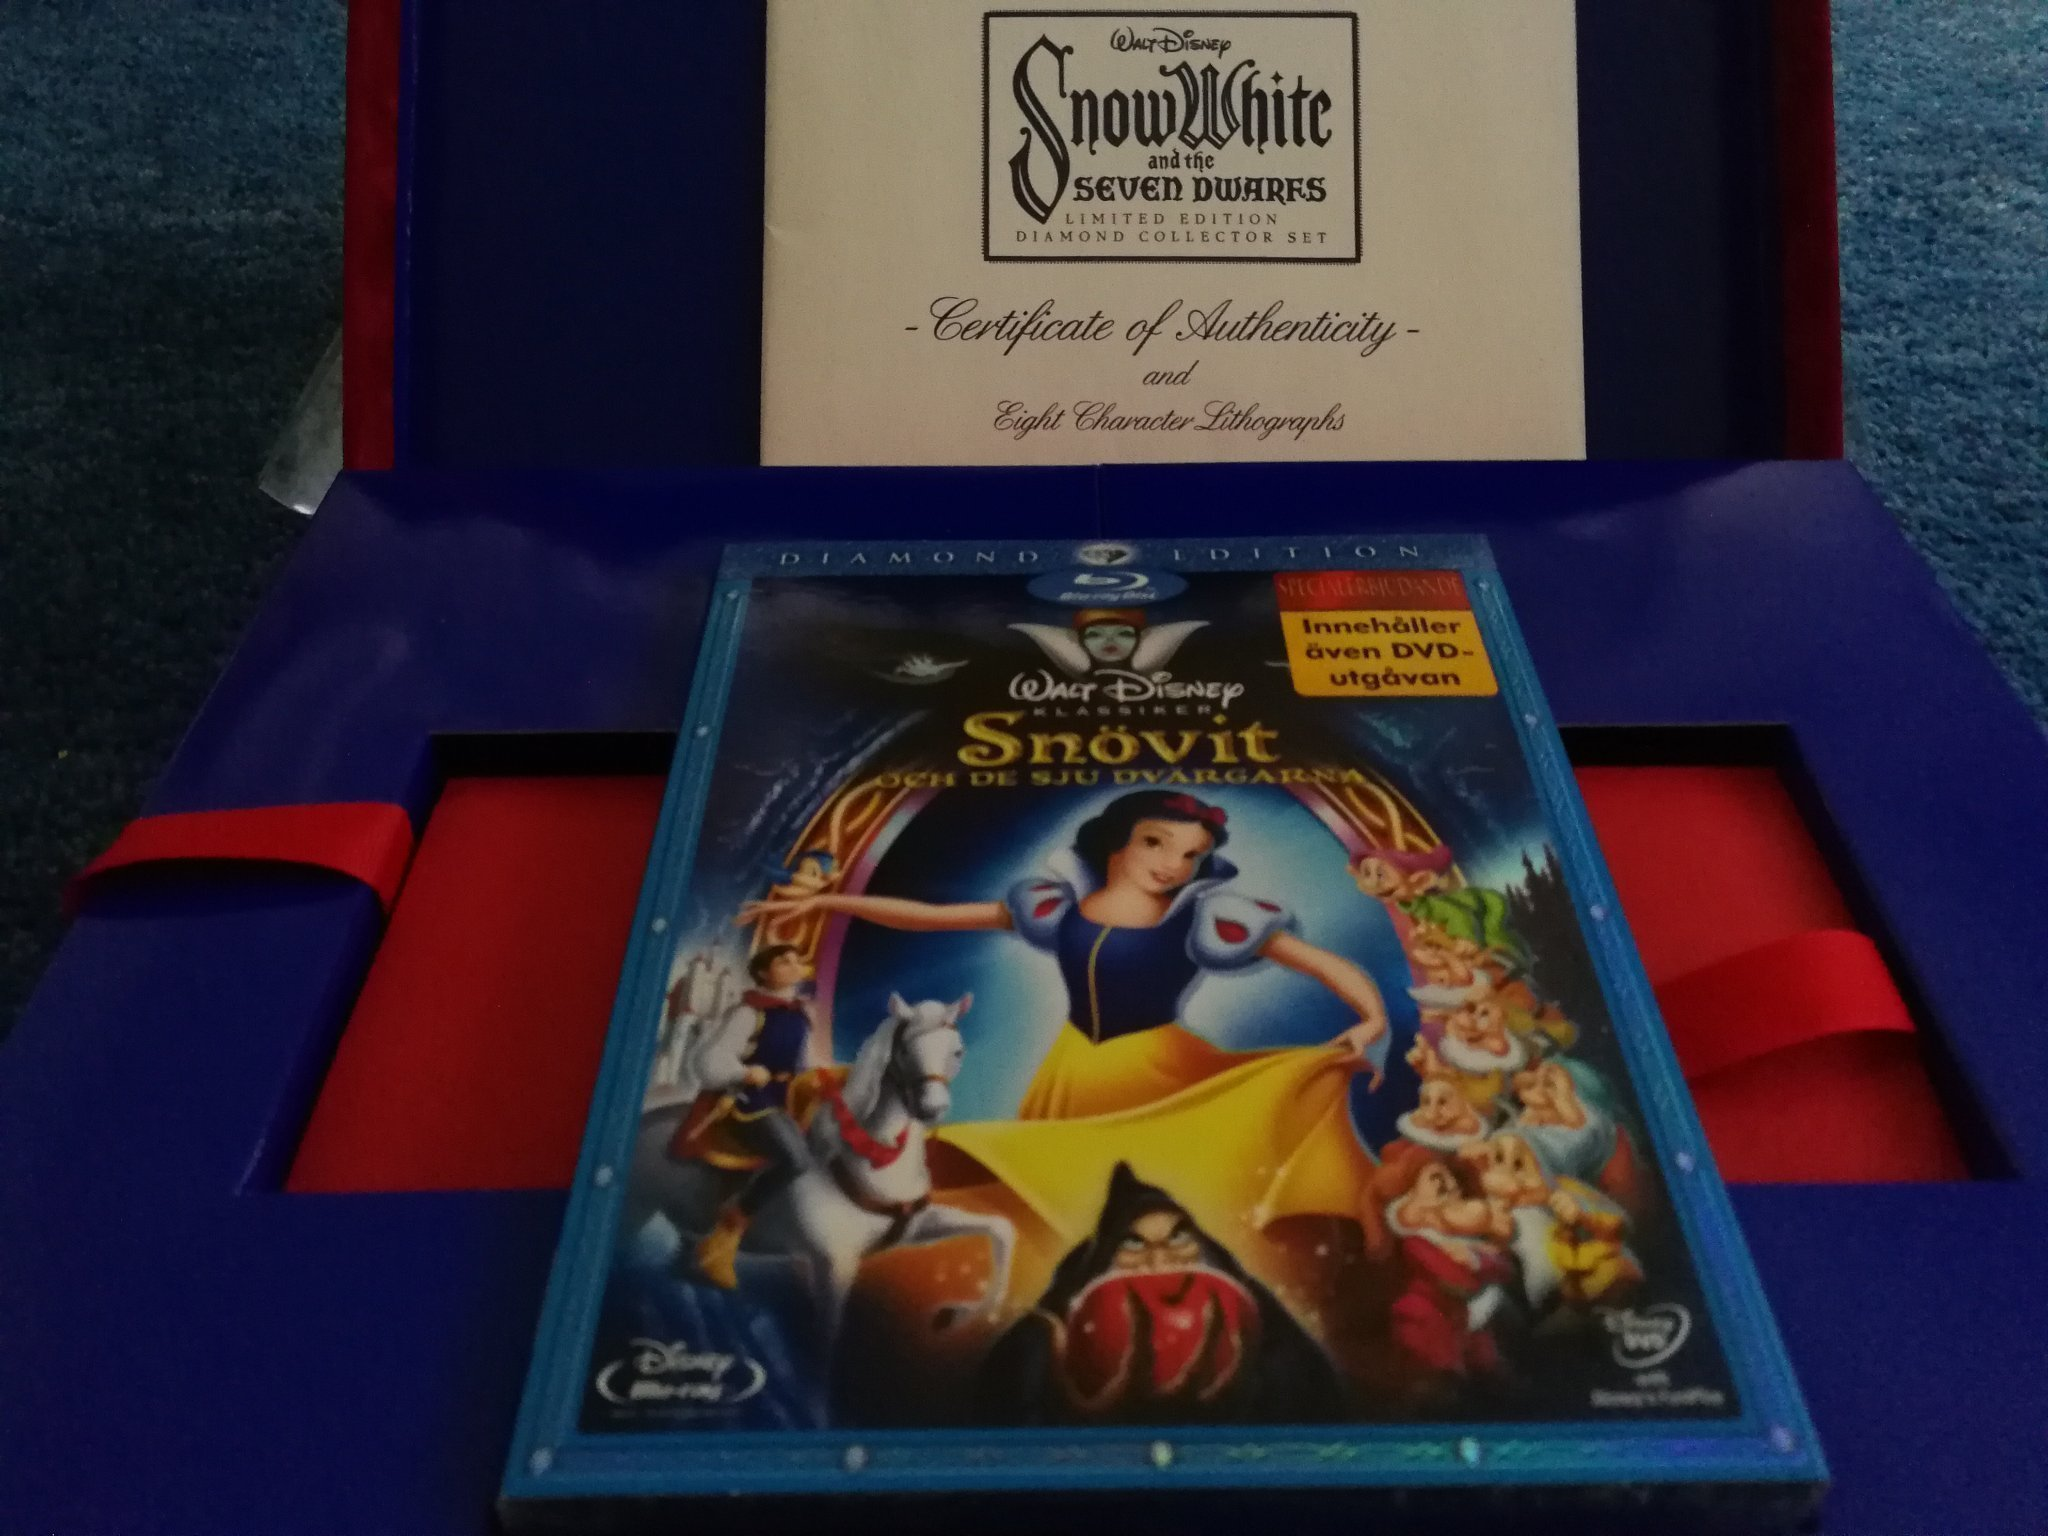 Walt Disney: Snövit och de sju dvärgarna! Limitet edition Diamond Collection Set